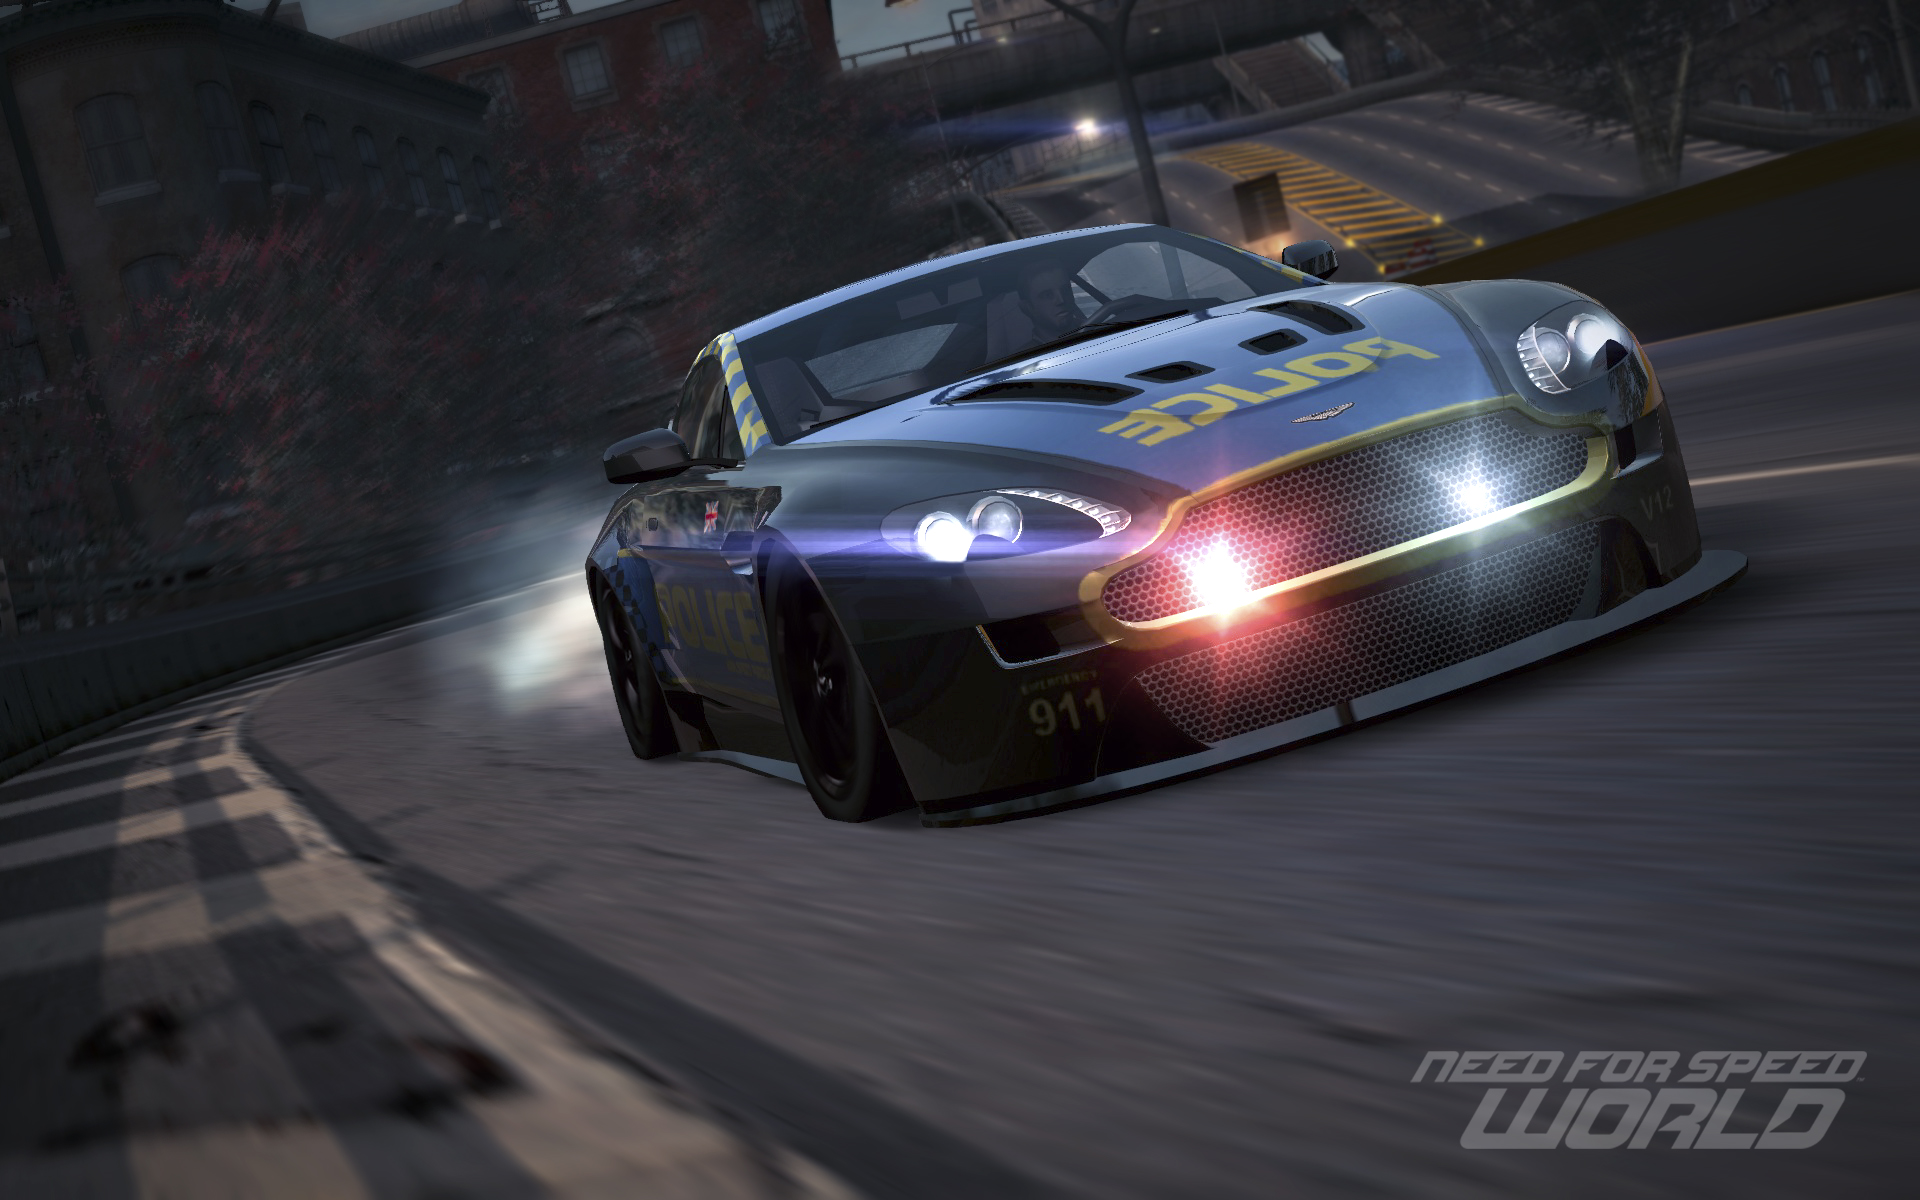 Carscop Editions Nfs World Wiki Fandom